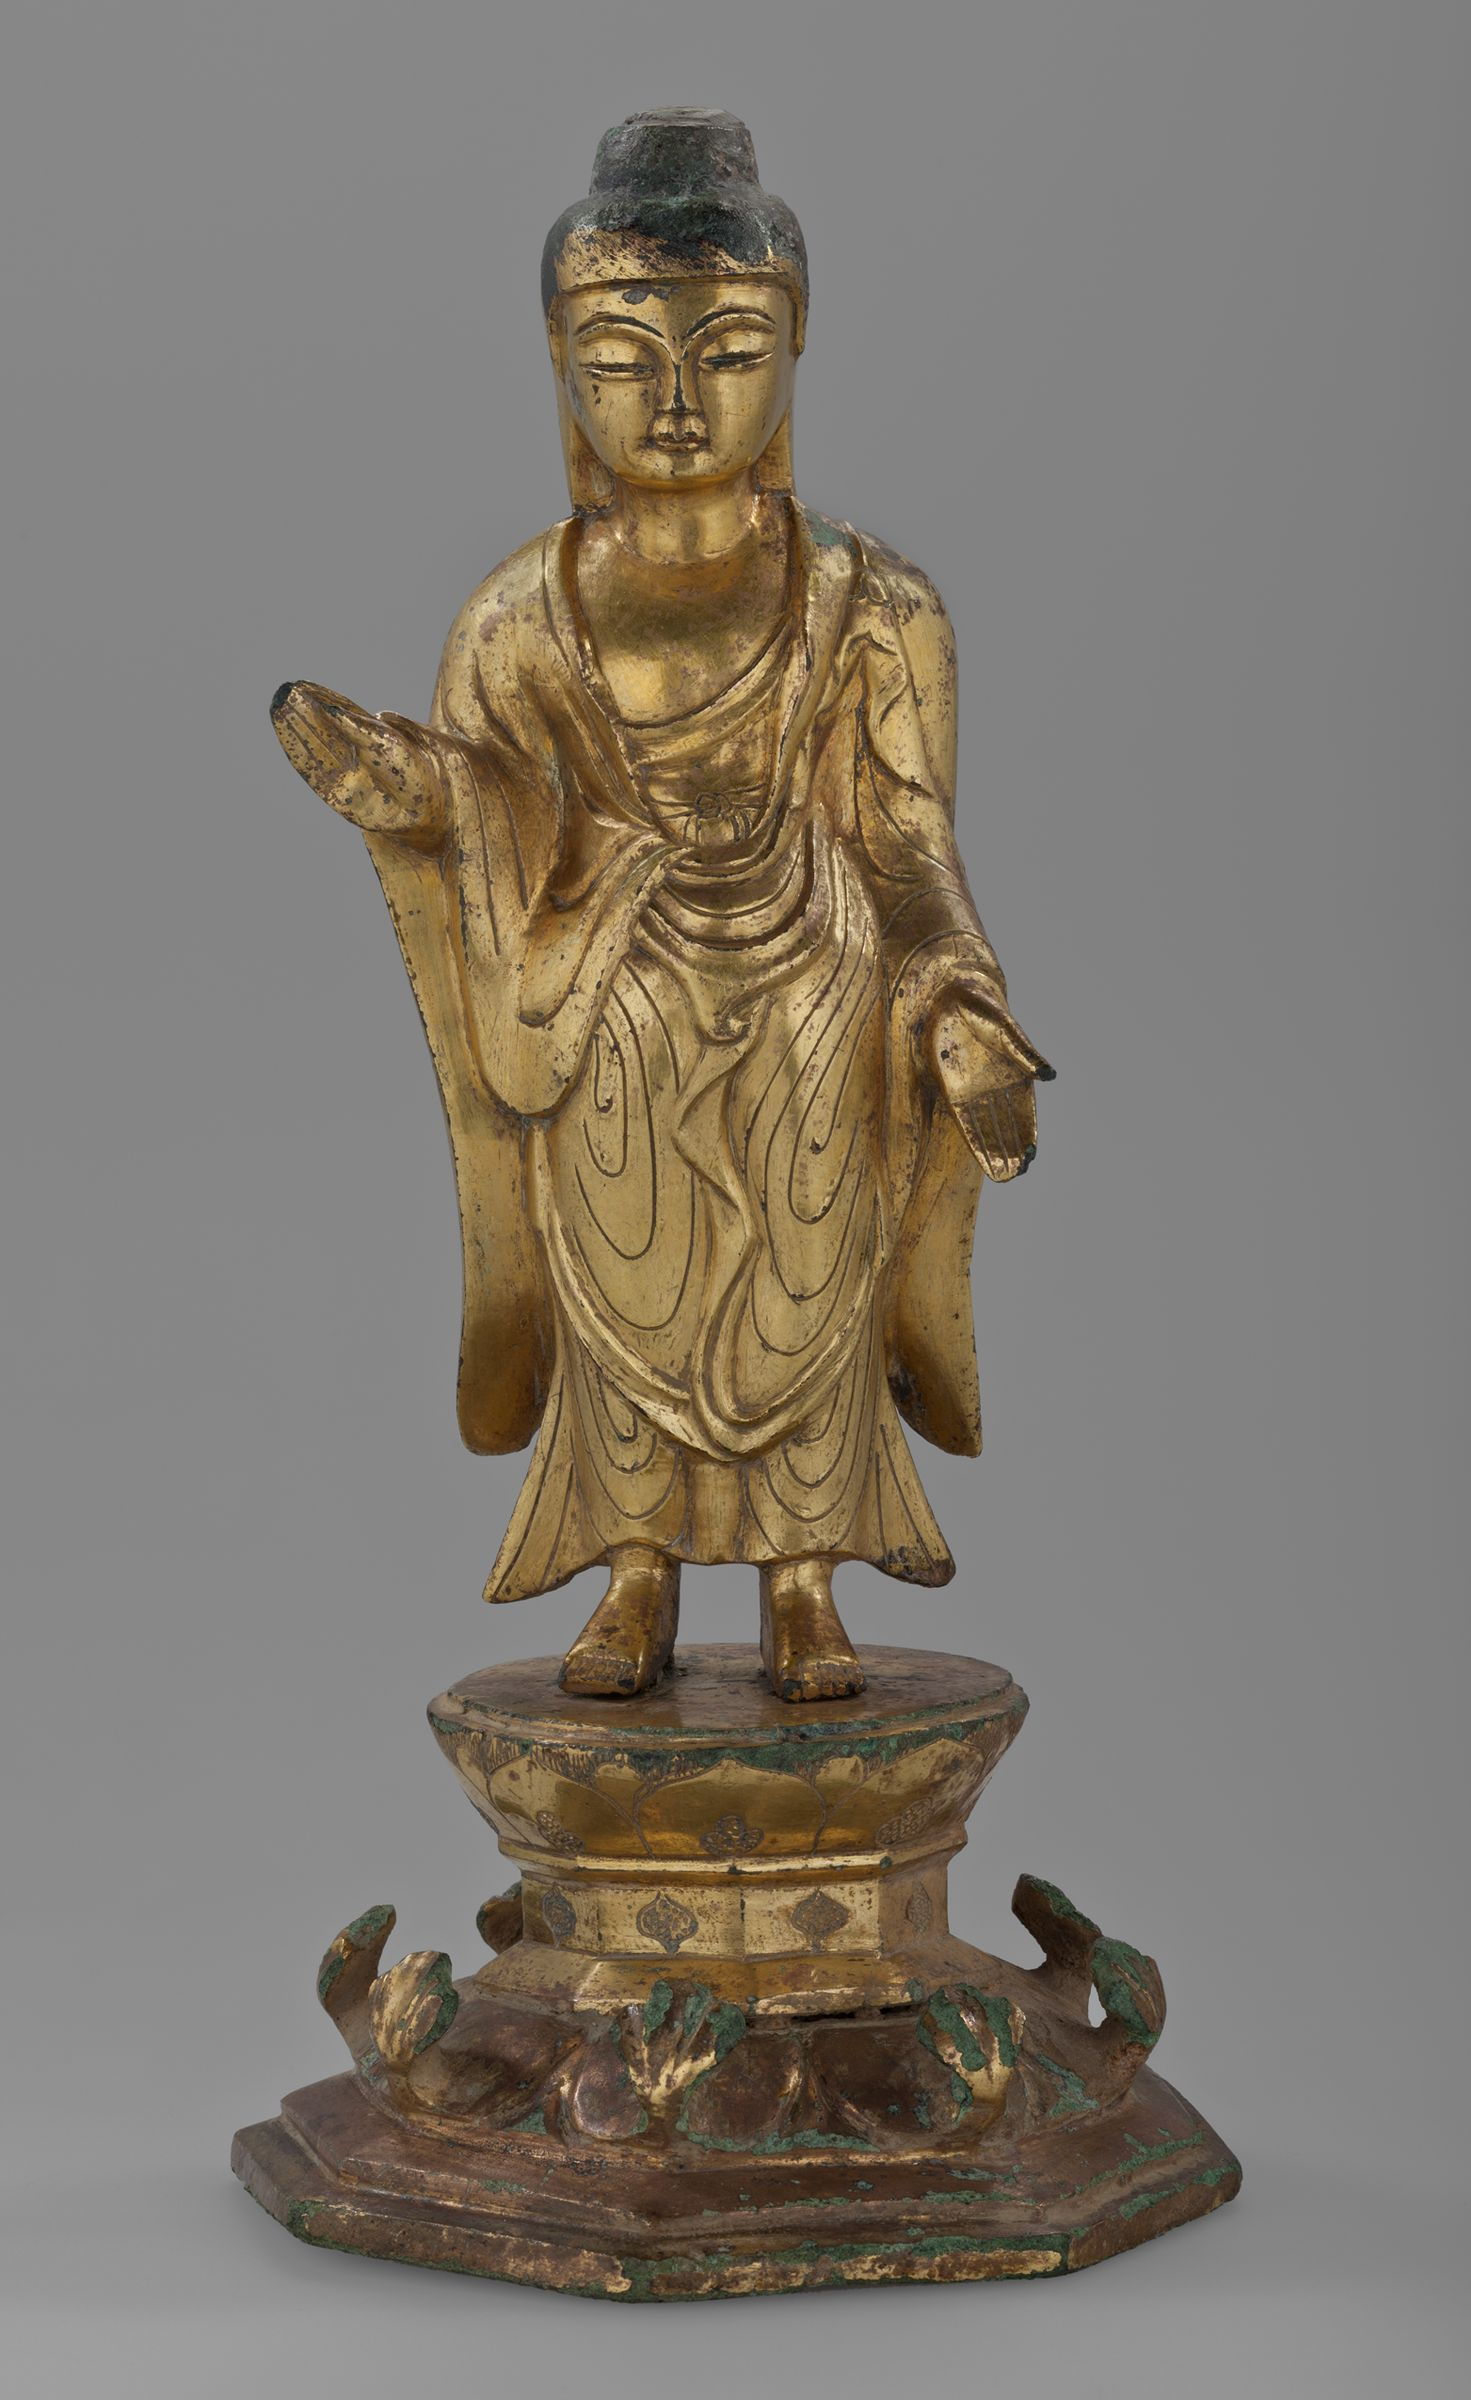 Buddha Standing On An Octagonal, Double-Lotus Base With His Right Hand Raised In The Abhaya-Mudra And His Left Hand Lowered In The Varada-Mudra, Probably The Buddha Shakyamuni (Sôk'kamoni Yôrae)